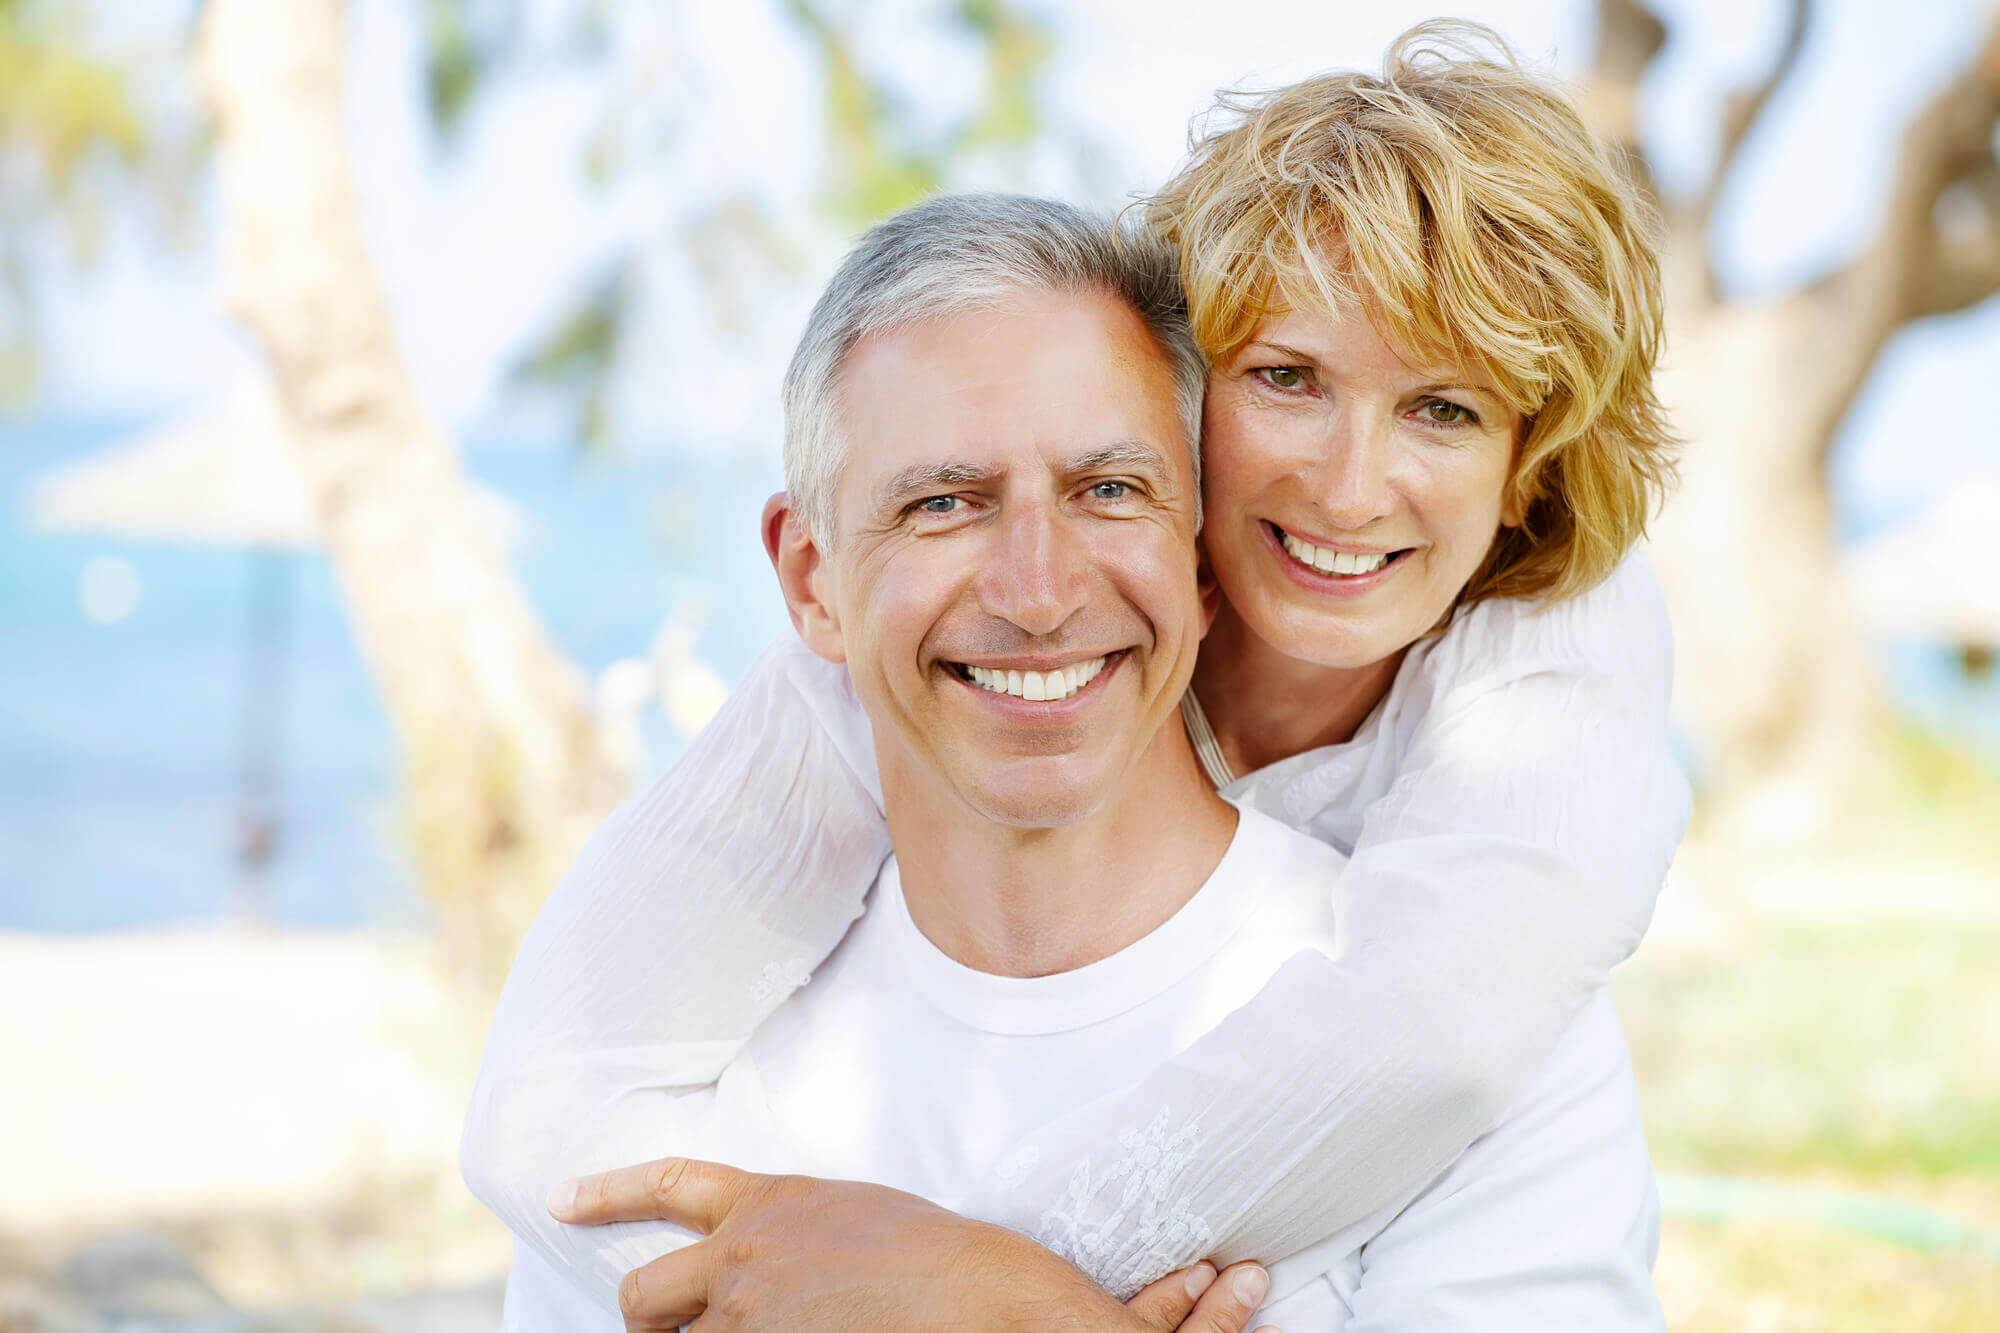 where can i get the best dentures in north miami?